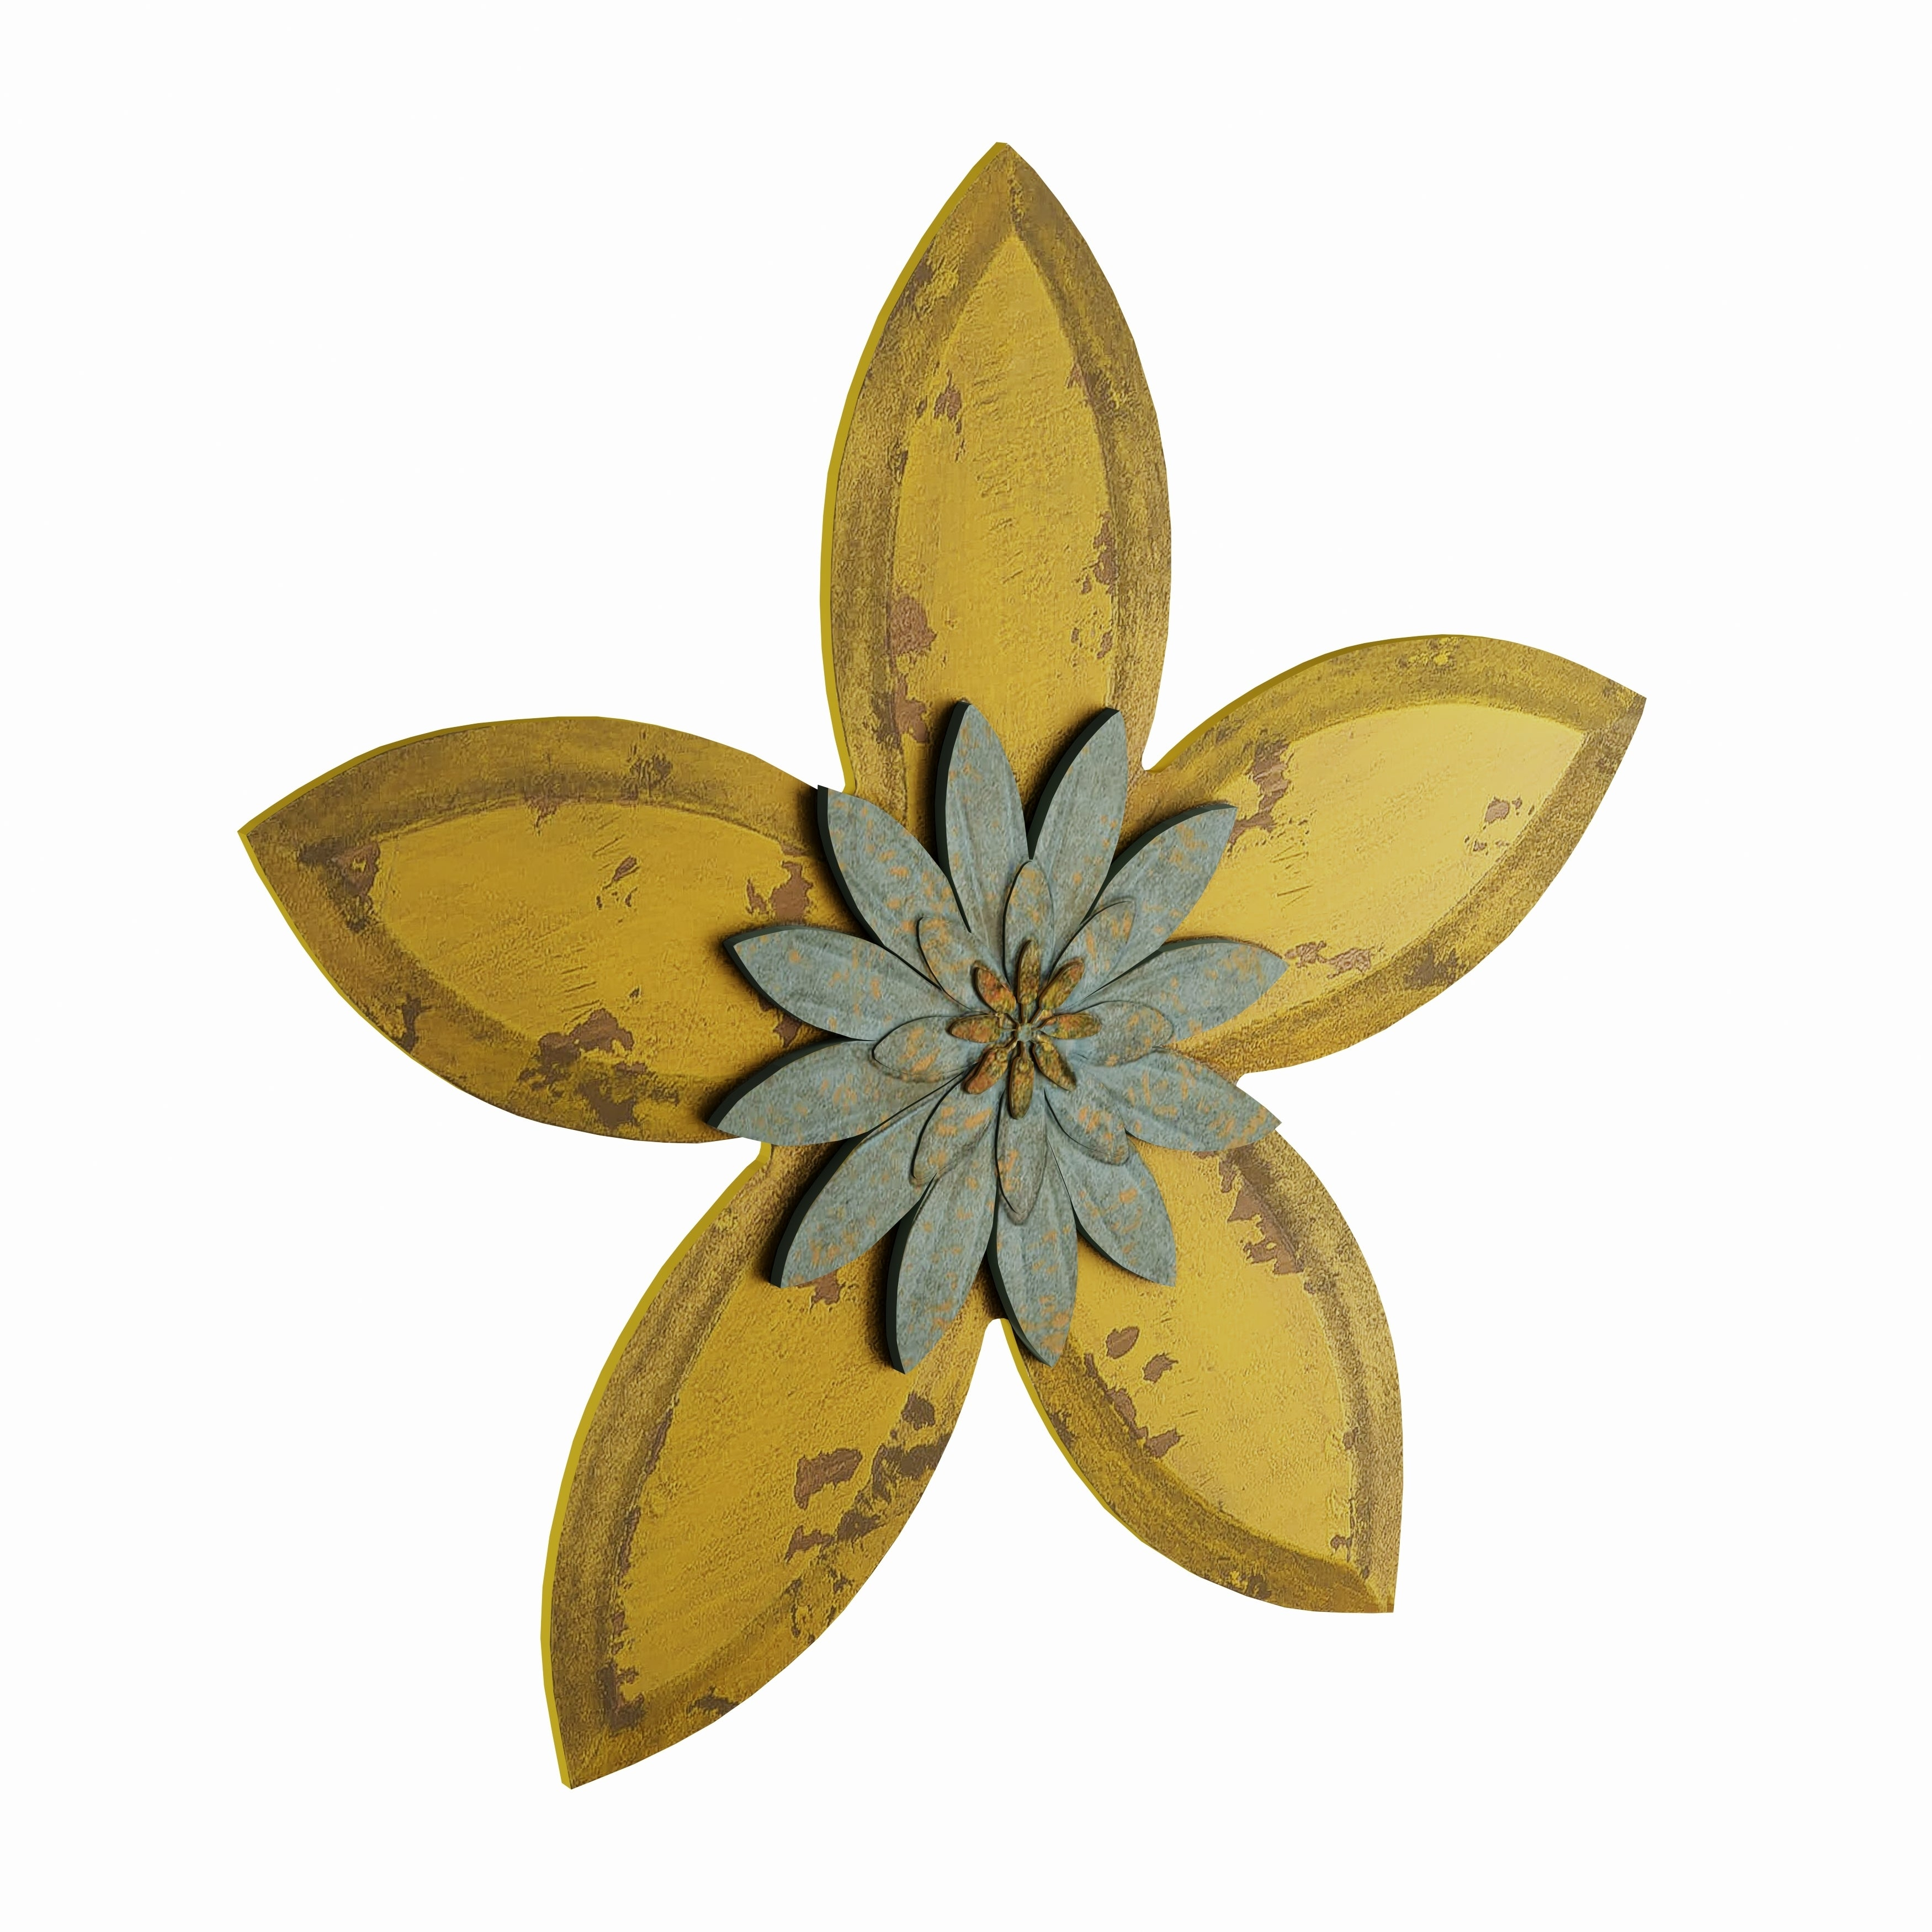 Flower Wall Decor Metal – Flowers Healthy Regarding Raheem Flowers Metal Wall Decor By Alcott Hill (View 7 of 30)